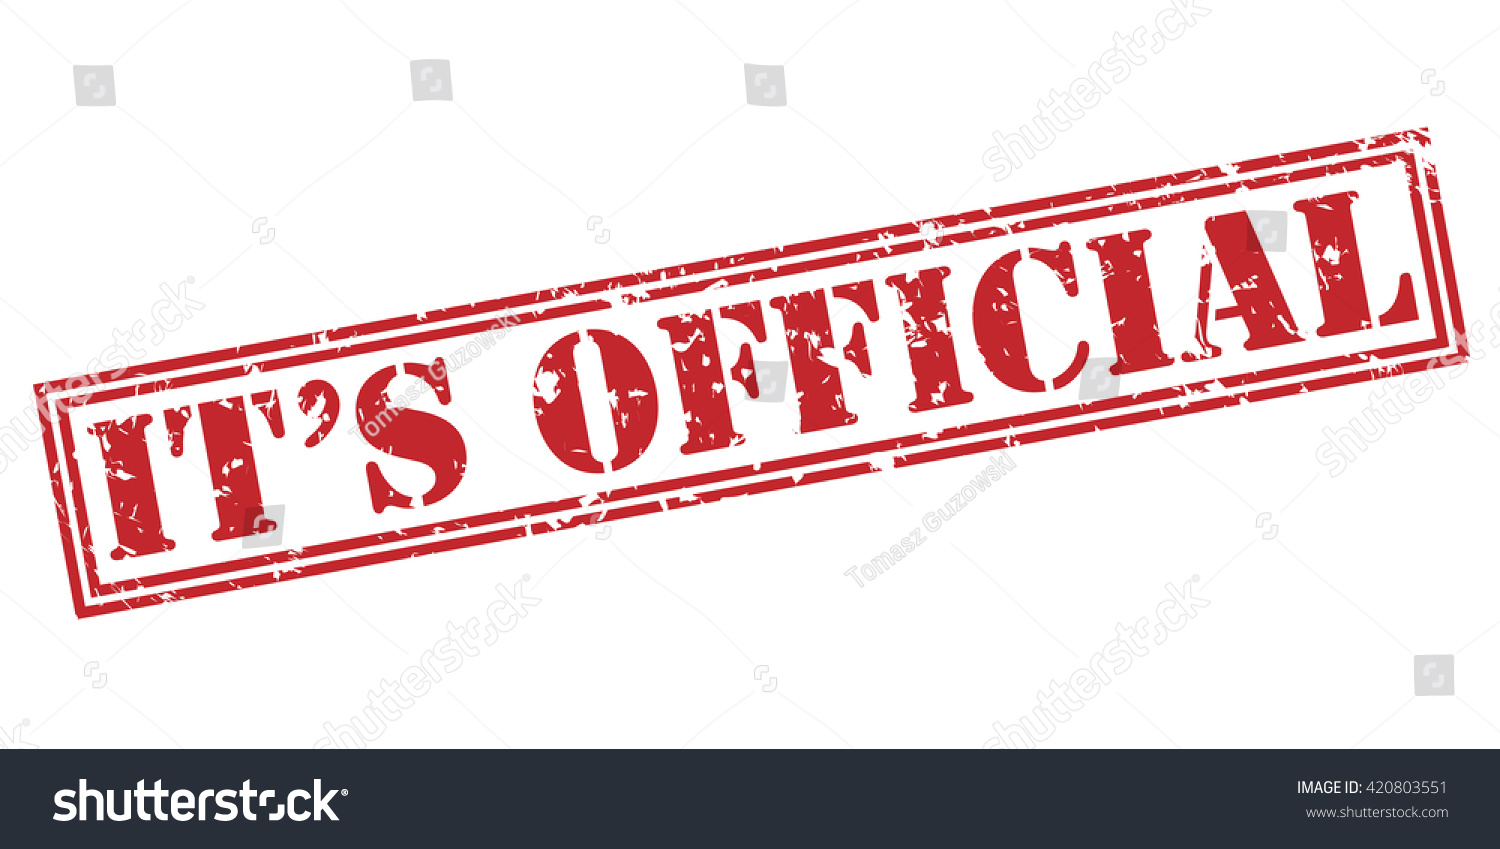 official stamp stockillustration 420803551 shutterstock rh shutterstock com itsofficialmarco youtube itsofficialmarco instagram